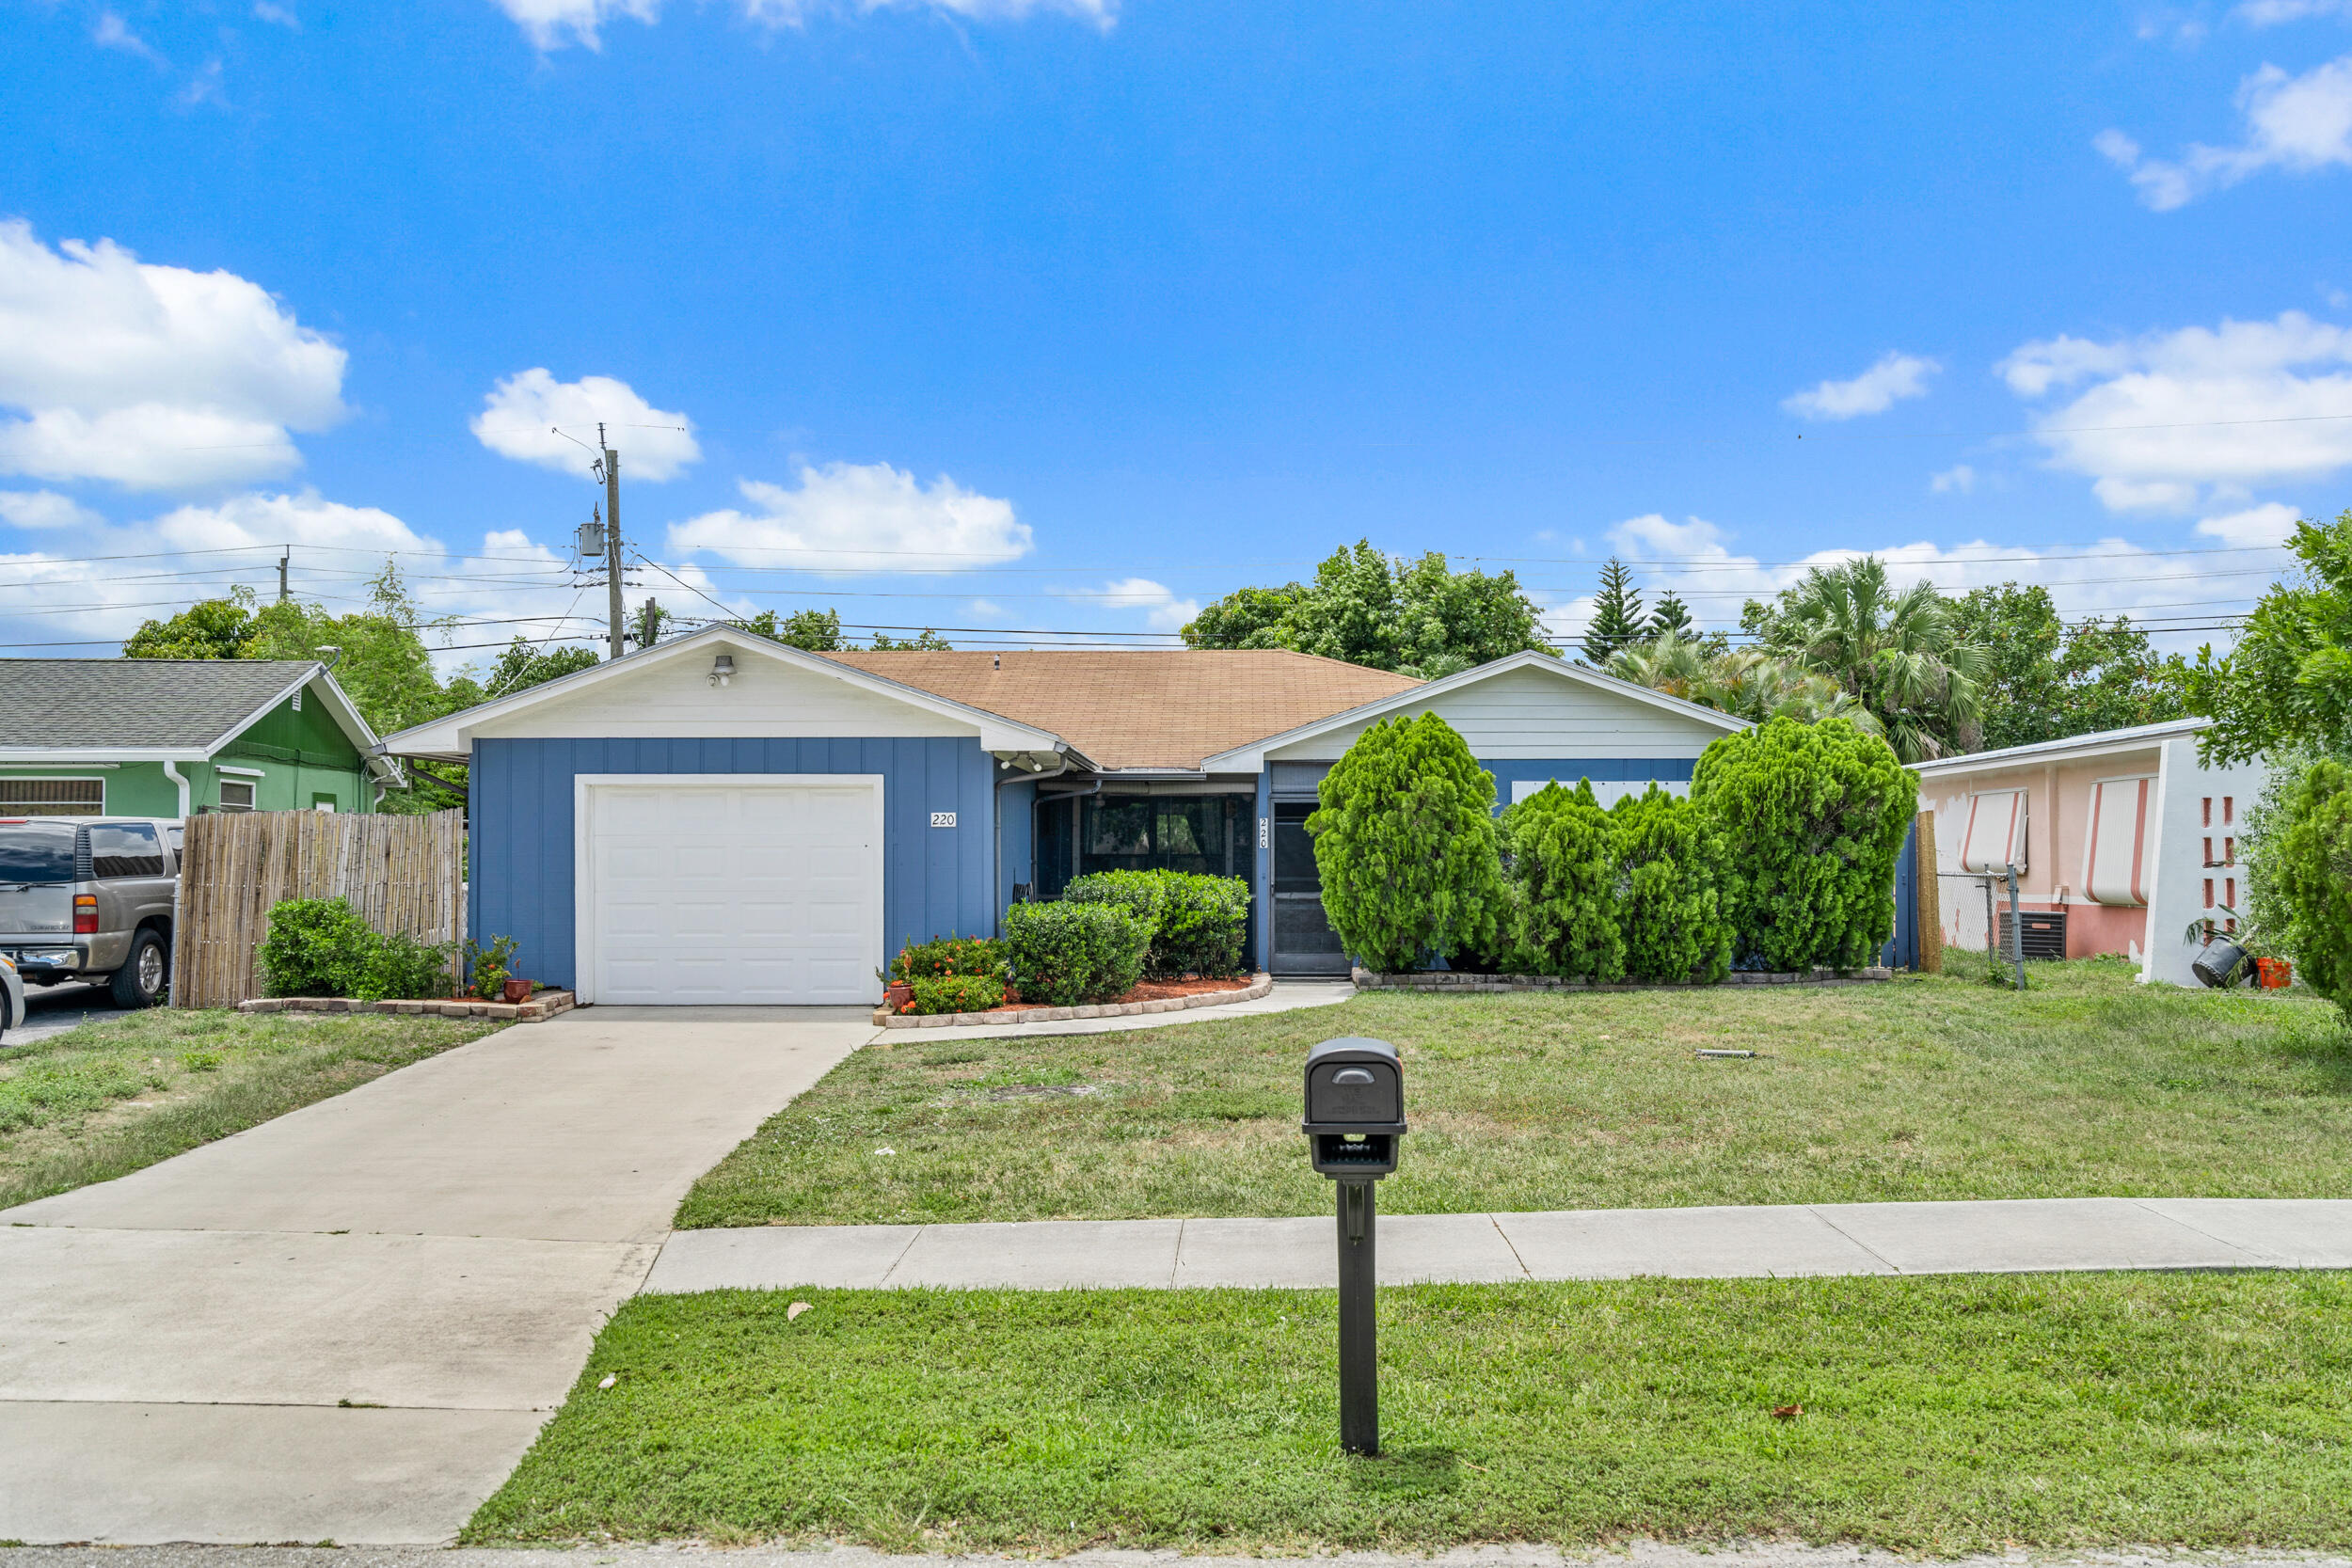 Your opportunity to live in Jupiter has arrived! This 3 bedroom 2 bathroom single family house is located in a desirable and rare no HOA community. It is on one of the quiet streets, not on the main road. It features a full 1-car garage, updated lighting throughout the house, updated kitchen cabinets and a large utility room that can be used to expand the kitchen or as an extra bedroom or home office. This house sits on a nice size lot that provides lots of privacy and enough space for family gatherings, a playground for the kids, or a fenced area for your furry friends. This house is also centrally located in Jupiter. Your next home will be less than 3-4 miles away from the amazing Jupiter Beaches, Harbourside, Jupiter Lighthouse, Cinquez Dog Park, Carlin Park, Abacoa, Roger Dean Stadium, I95, Florida Turnpike, and the many supermarkets, shopping centers, and restaurants in Jupiter. As if this was not enough, you will live in one of the best school zones in all of Palm Beach County. BONUS!: The house is wired up to a 100 Lb generator that powers the whole house. Come check it out before it's gone!